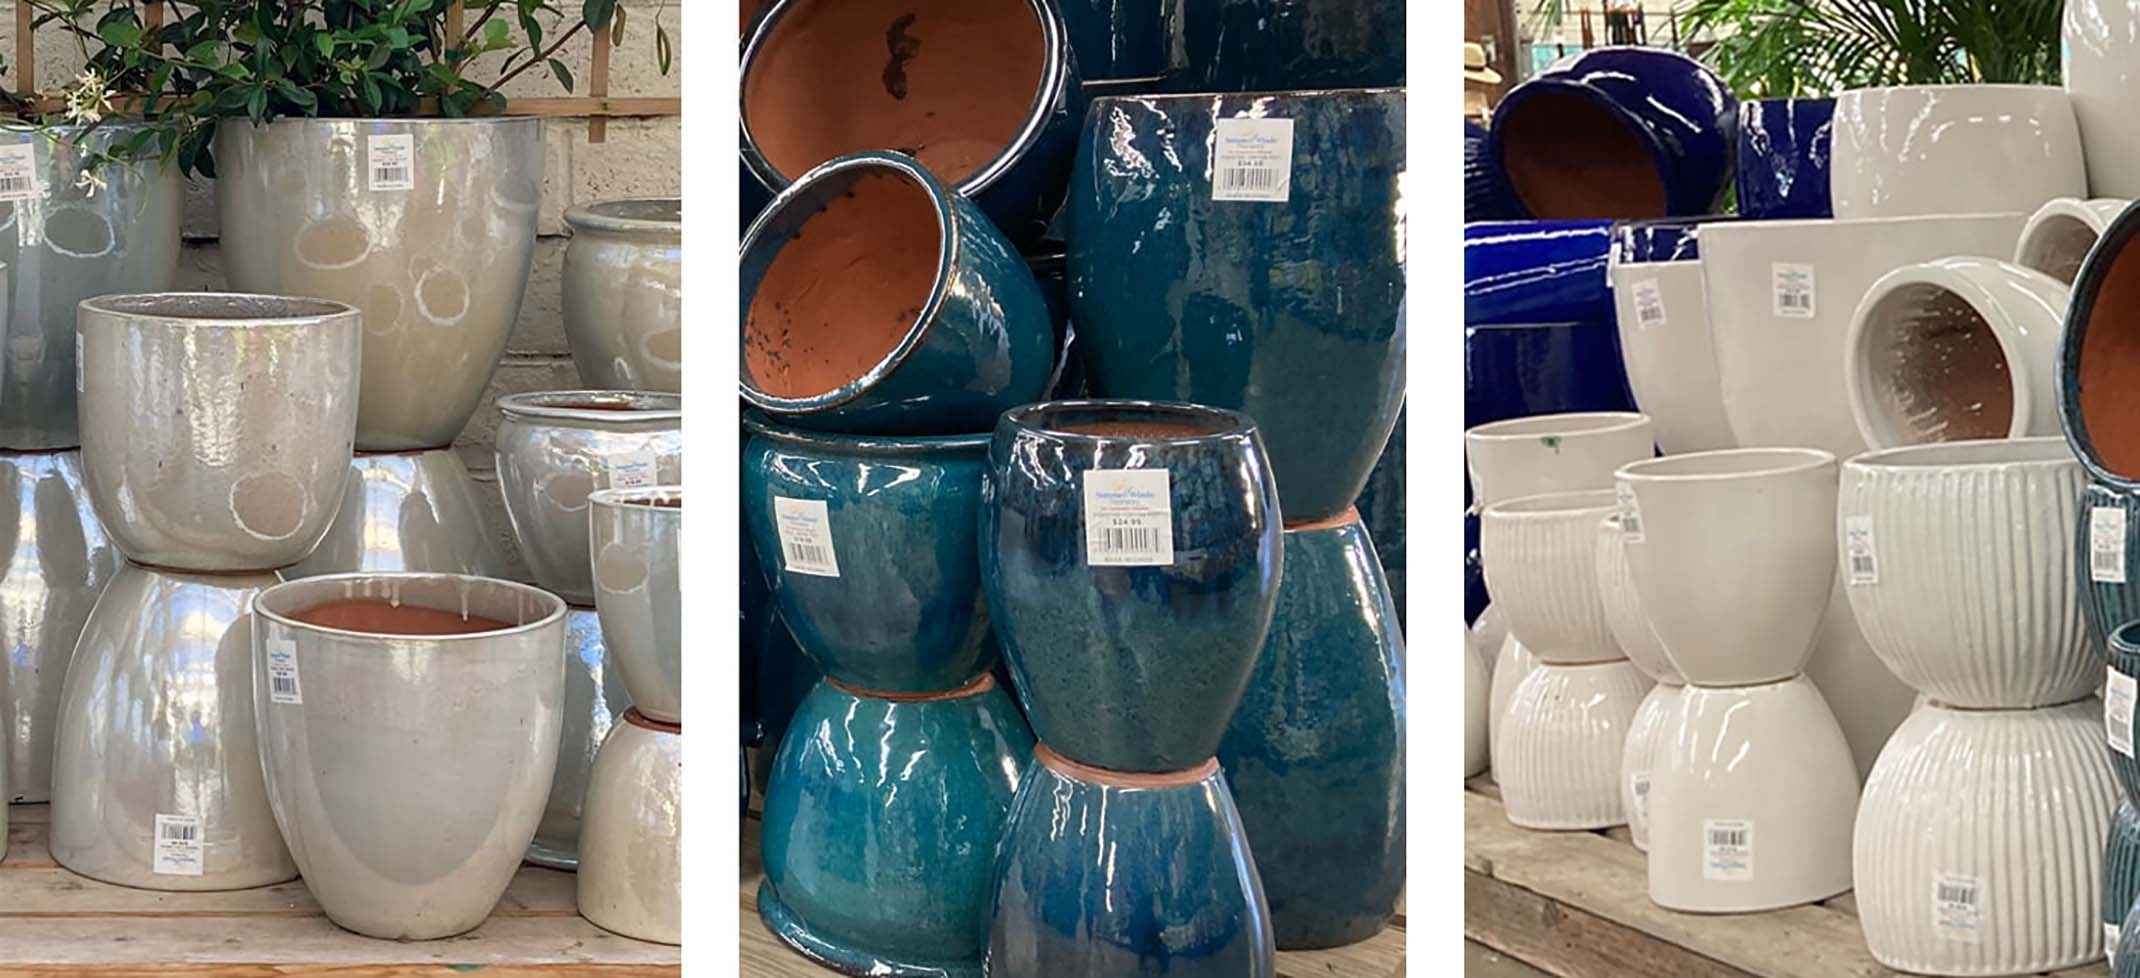 Graeme Haling outdoor and indoor pottery - various sizes and styles in pearl, blue and white